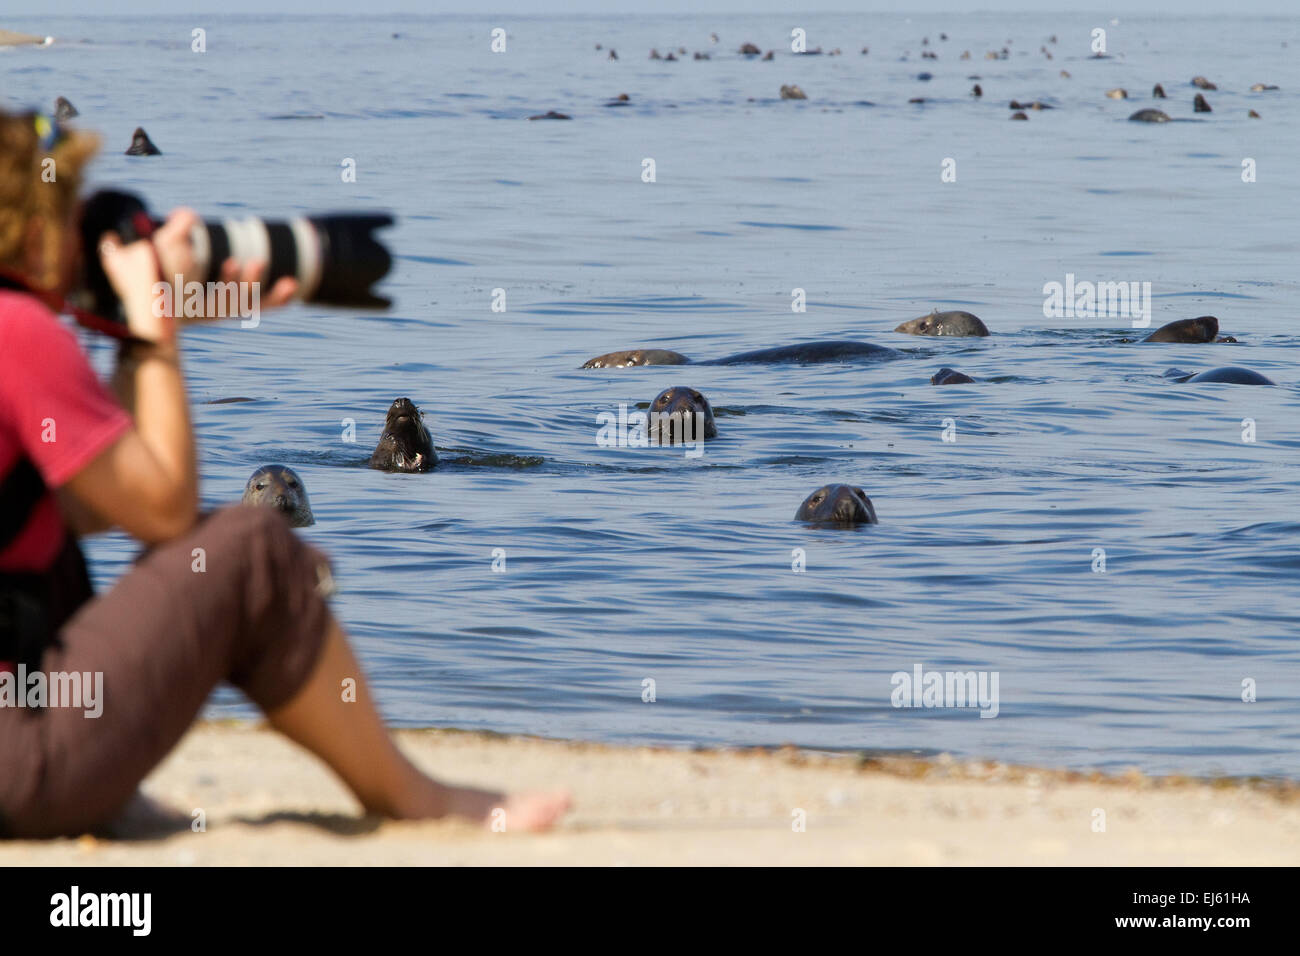 Cape Cod National Seashore with Grey seals and tourist at beach. Cape Cod Massachusetts. - Stock Image